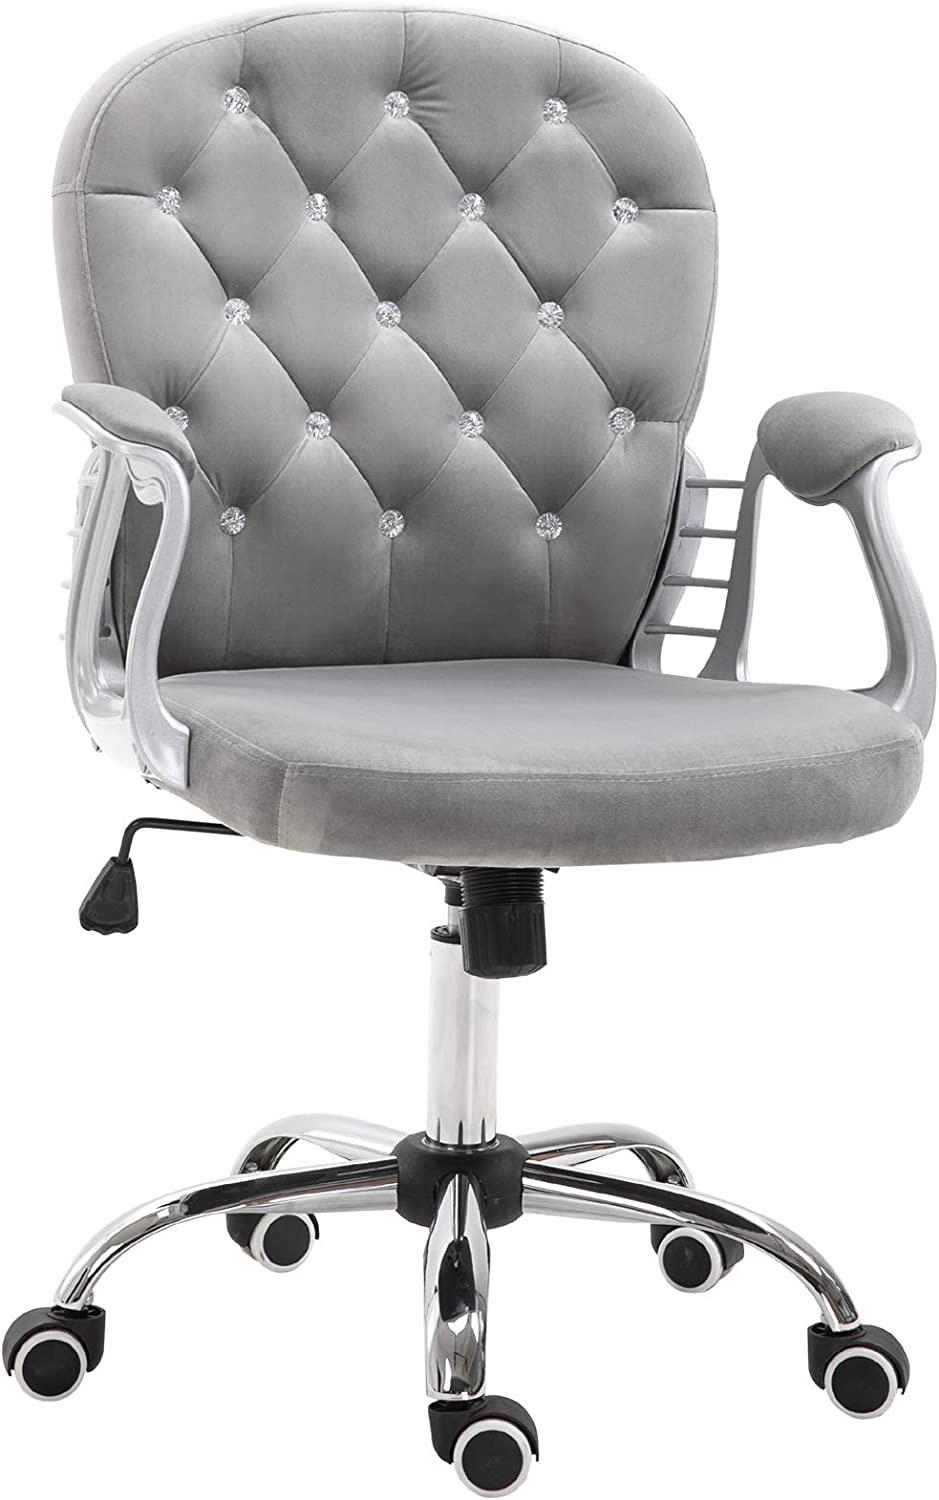 Vinsetto Quality inspection Vanity Middle Back Office Tufted Sale item Chair Swivel Backrest